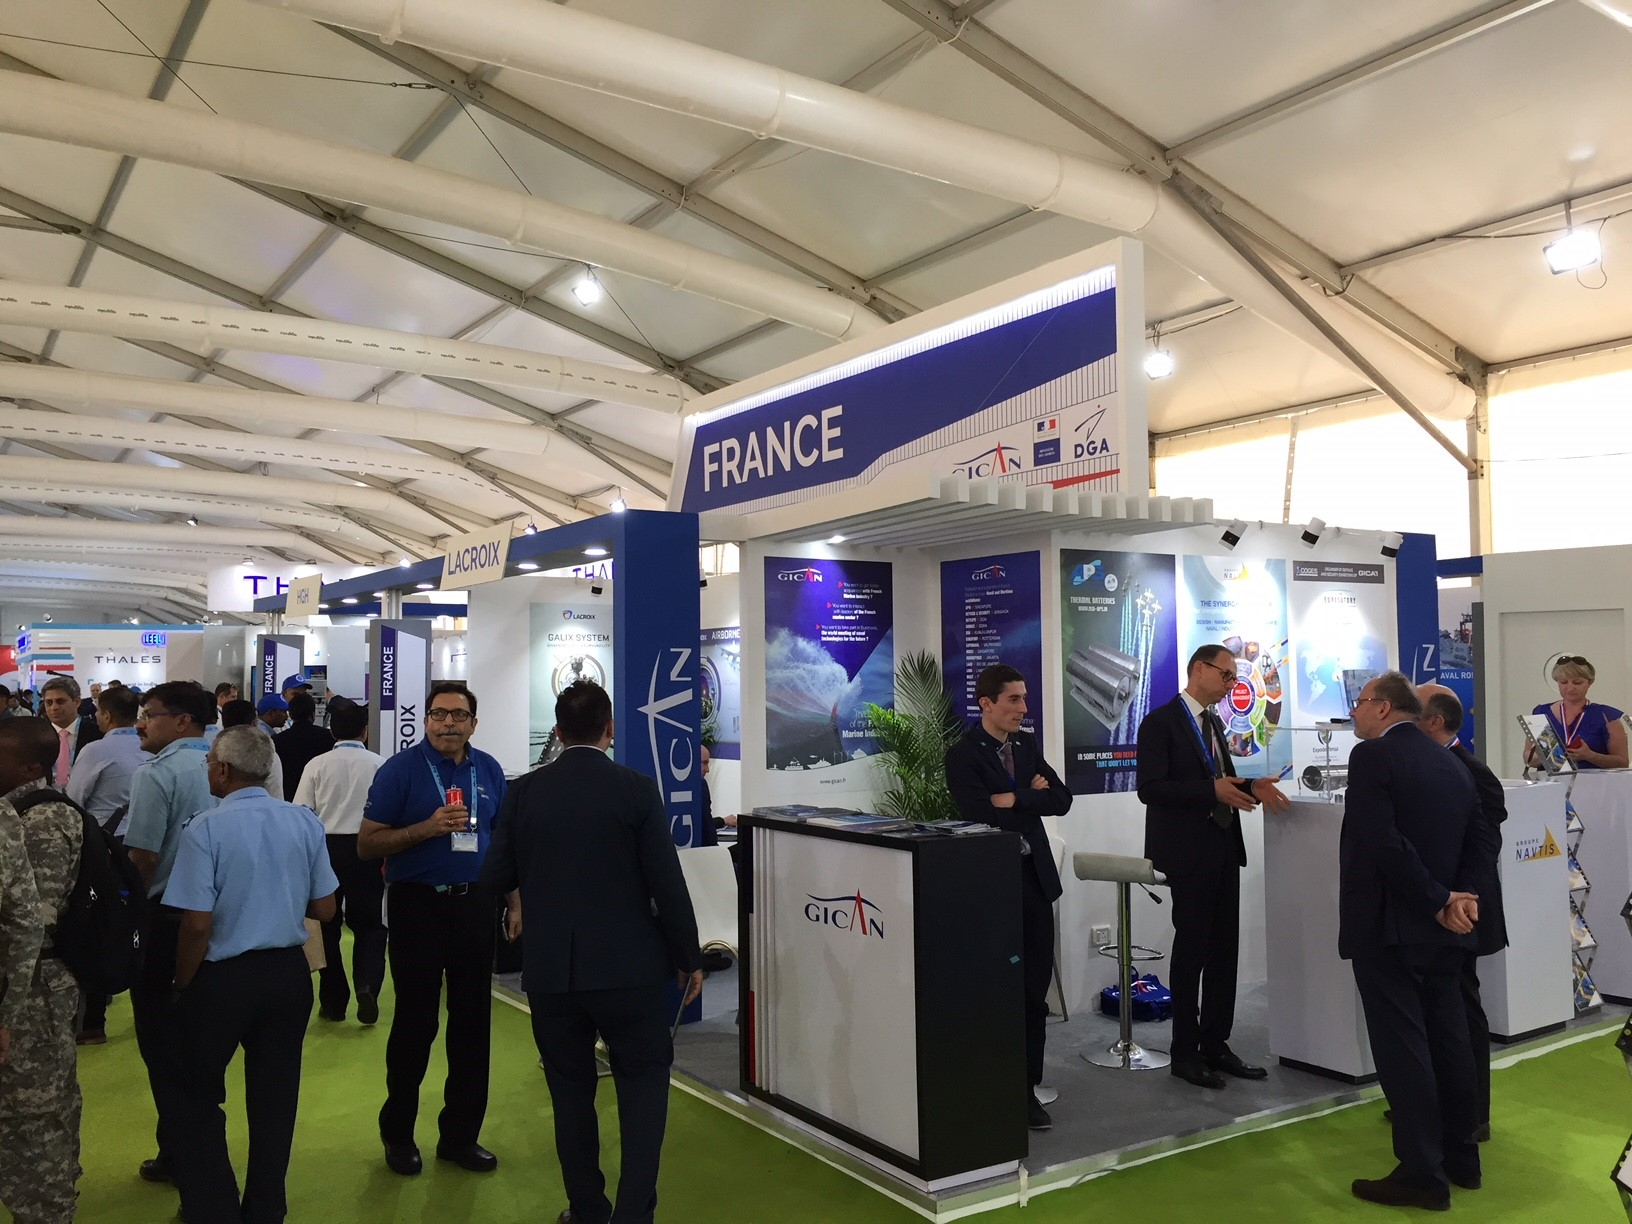 2018 04 13 - DEFEXPO 2018 French Pavilions